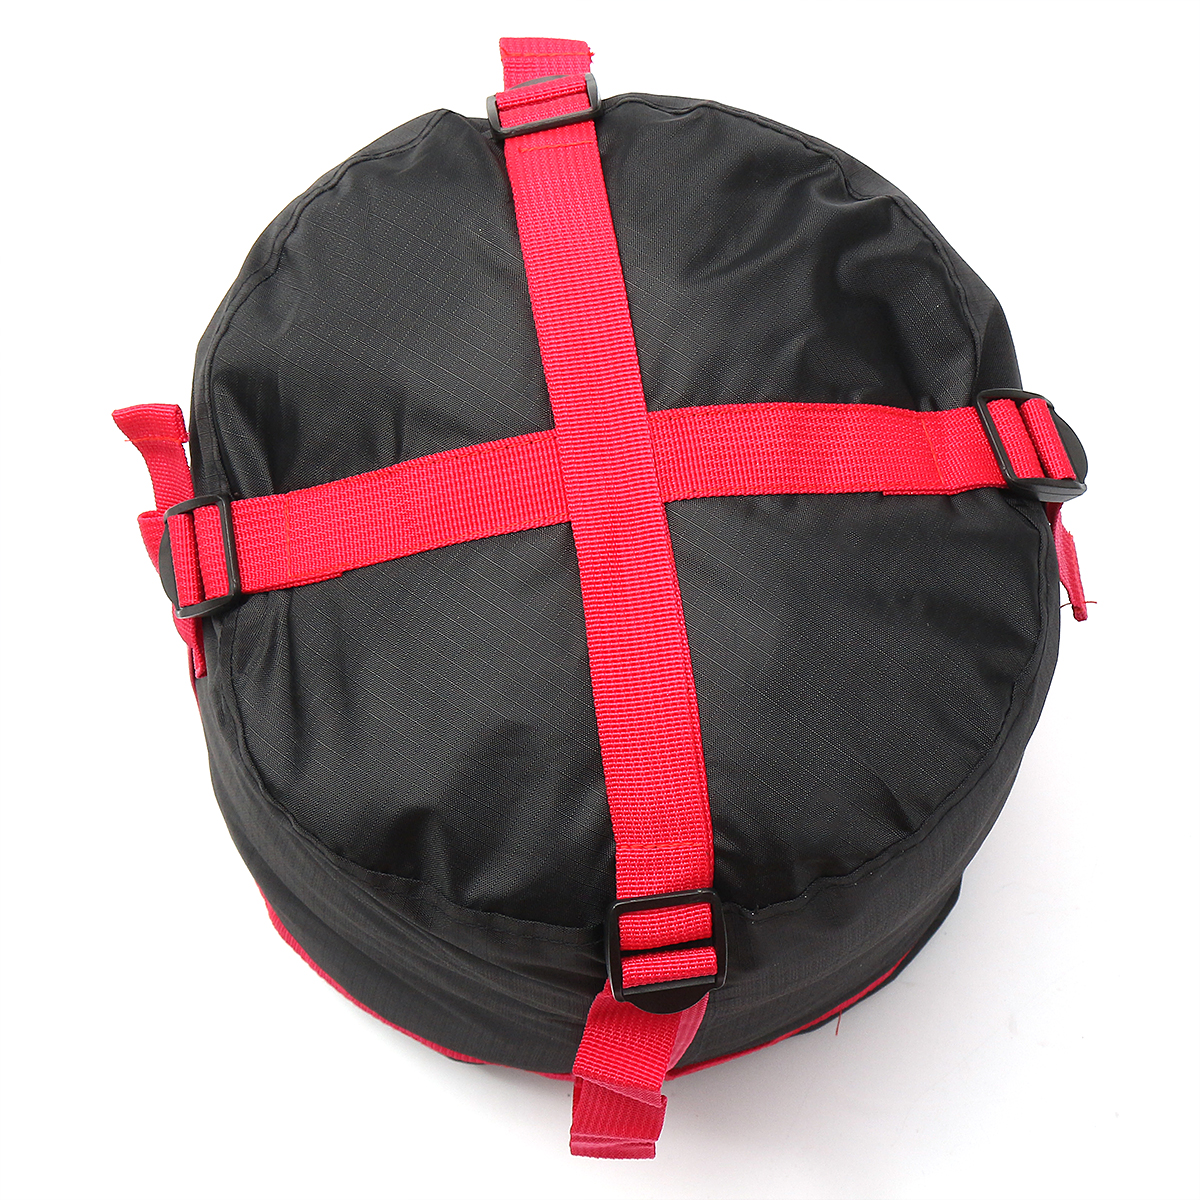 Compression Sack Sleeping Bag Stuff Storage Pack Pouch Outdoor Hiking Camping Sleeping Bag